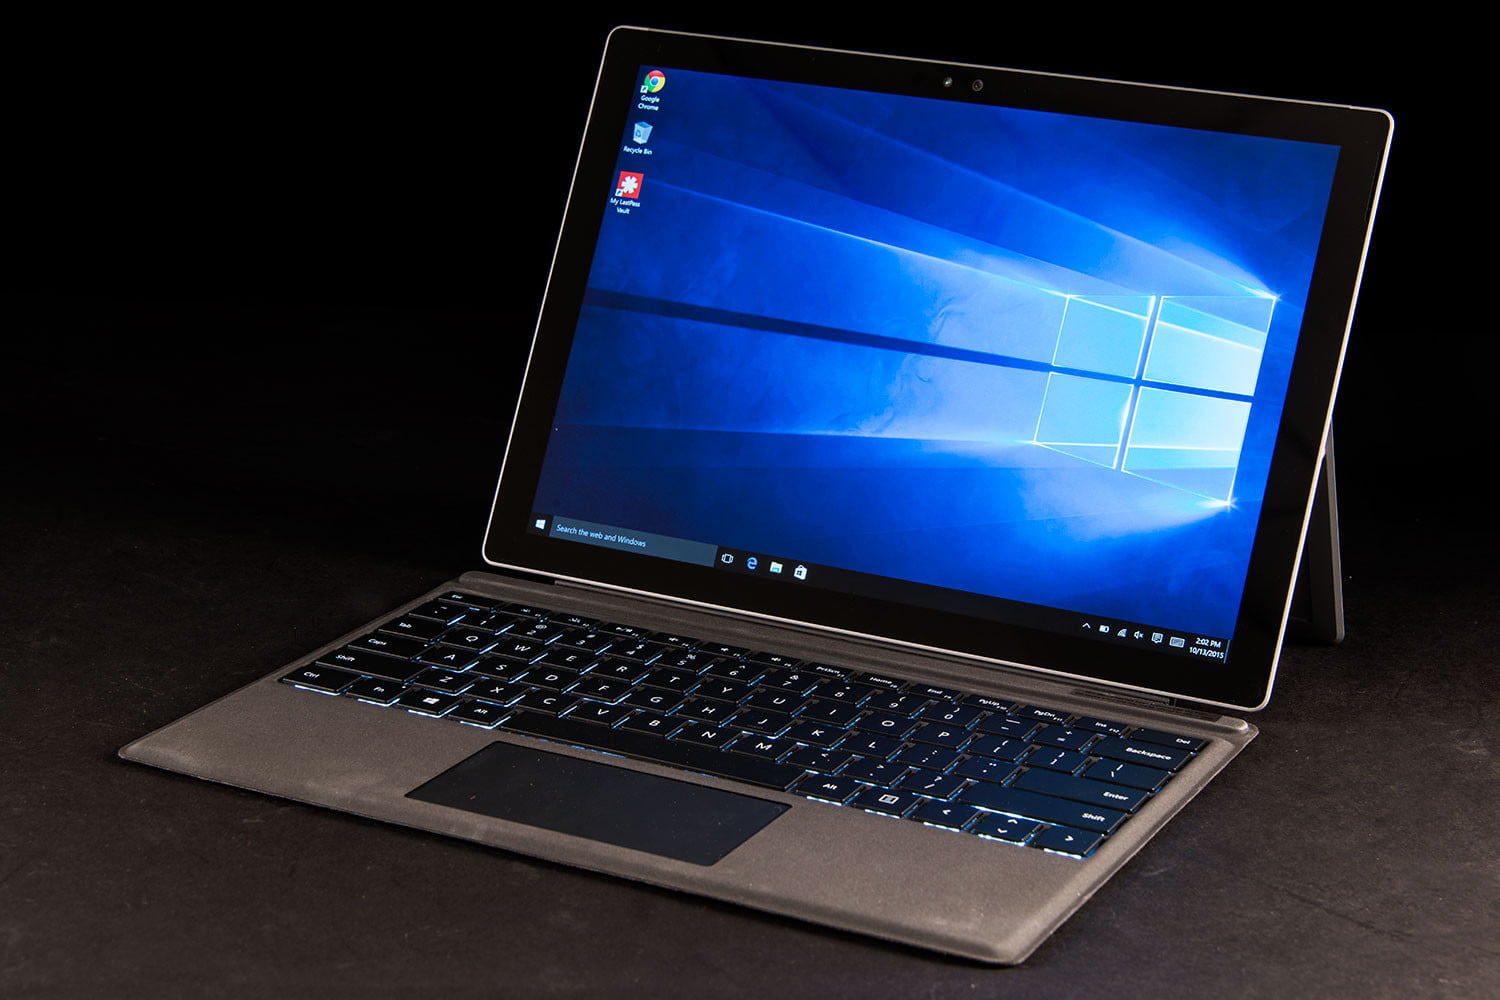 Huawei MateBook vs. Microsoft Surface Pro 4: The newcomer takes on the